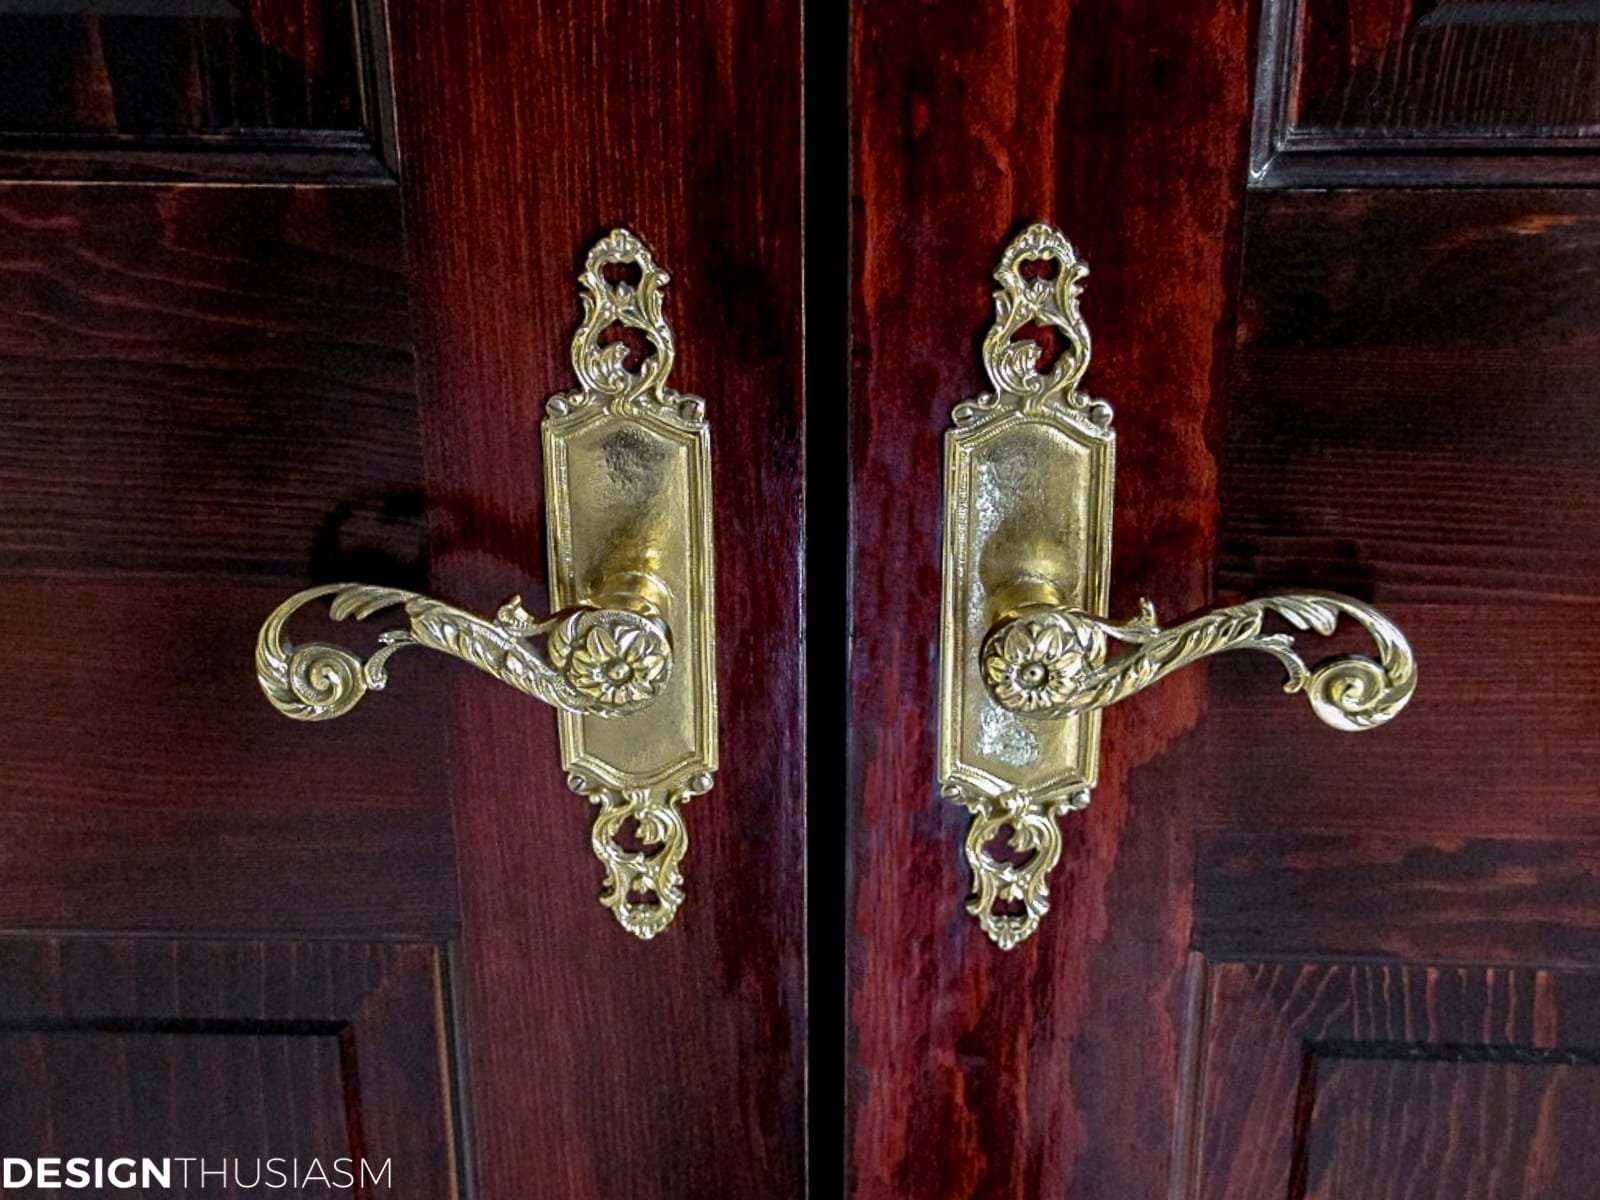 Door hardware and trim